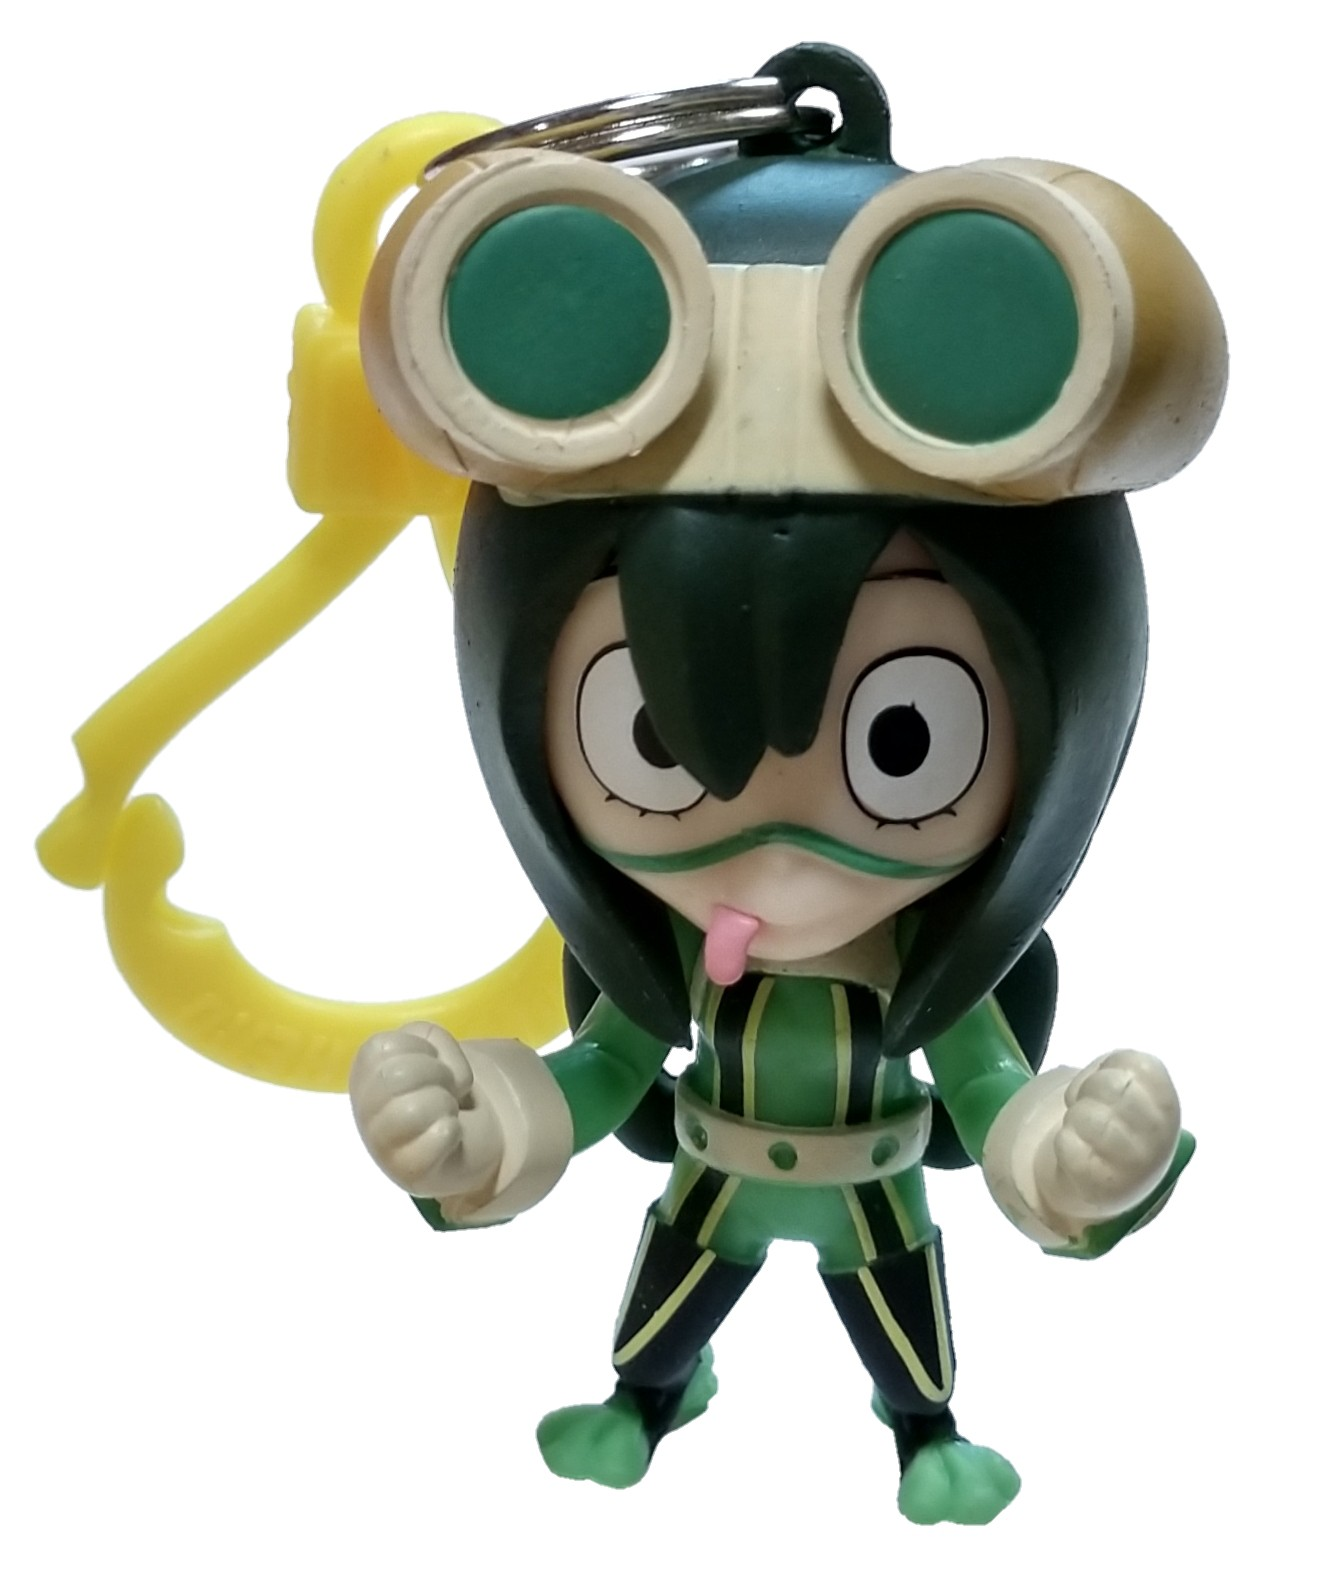 Details About My Hero Academia Backpack Clips Tsuyu Asui Minifigure Loose